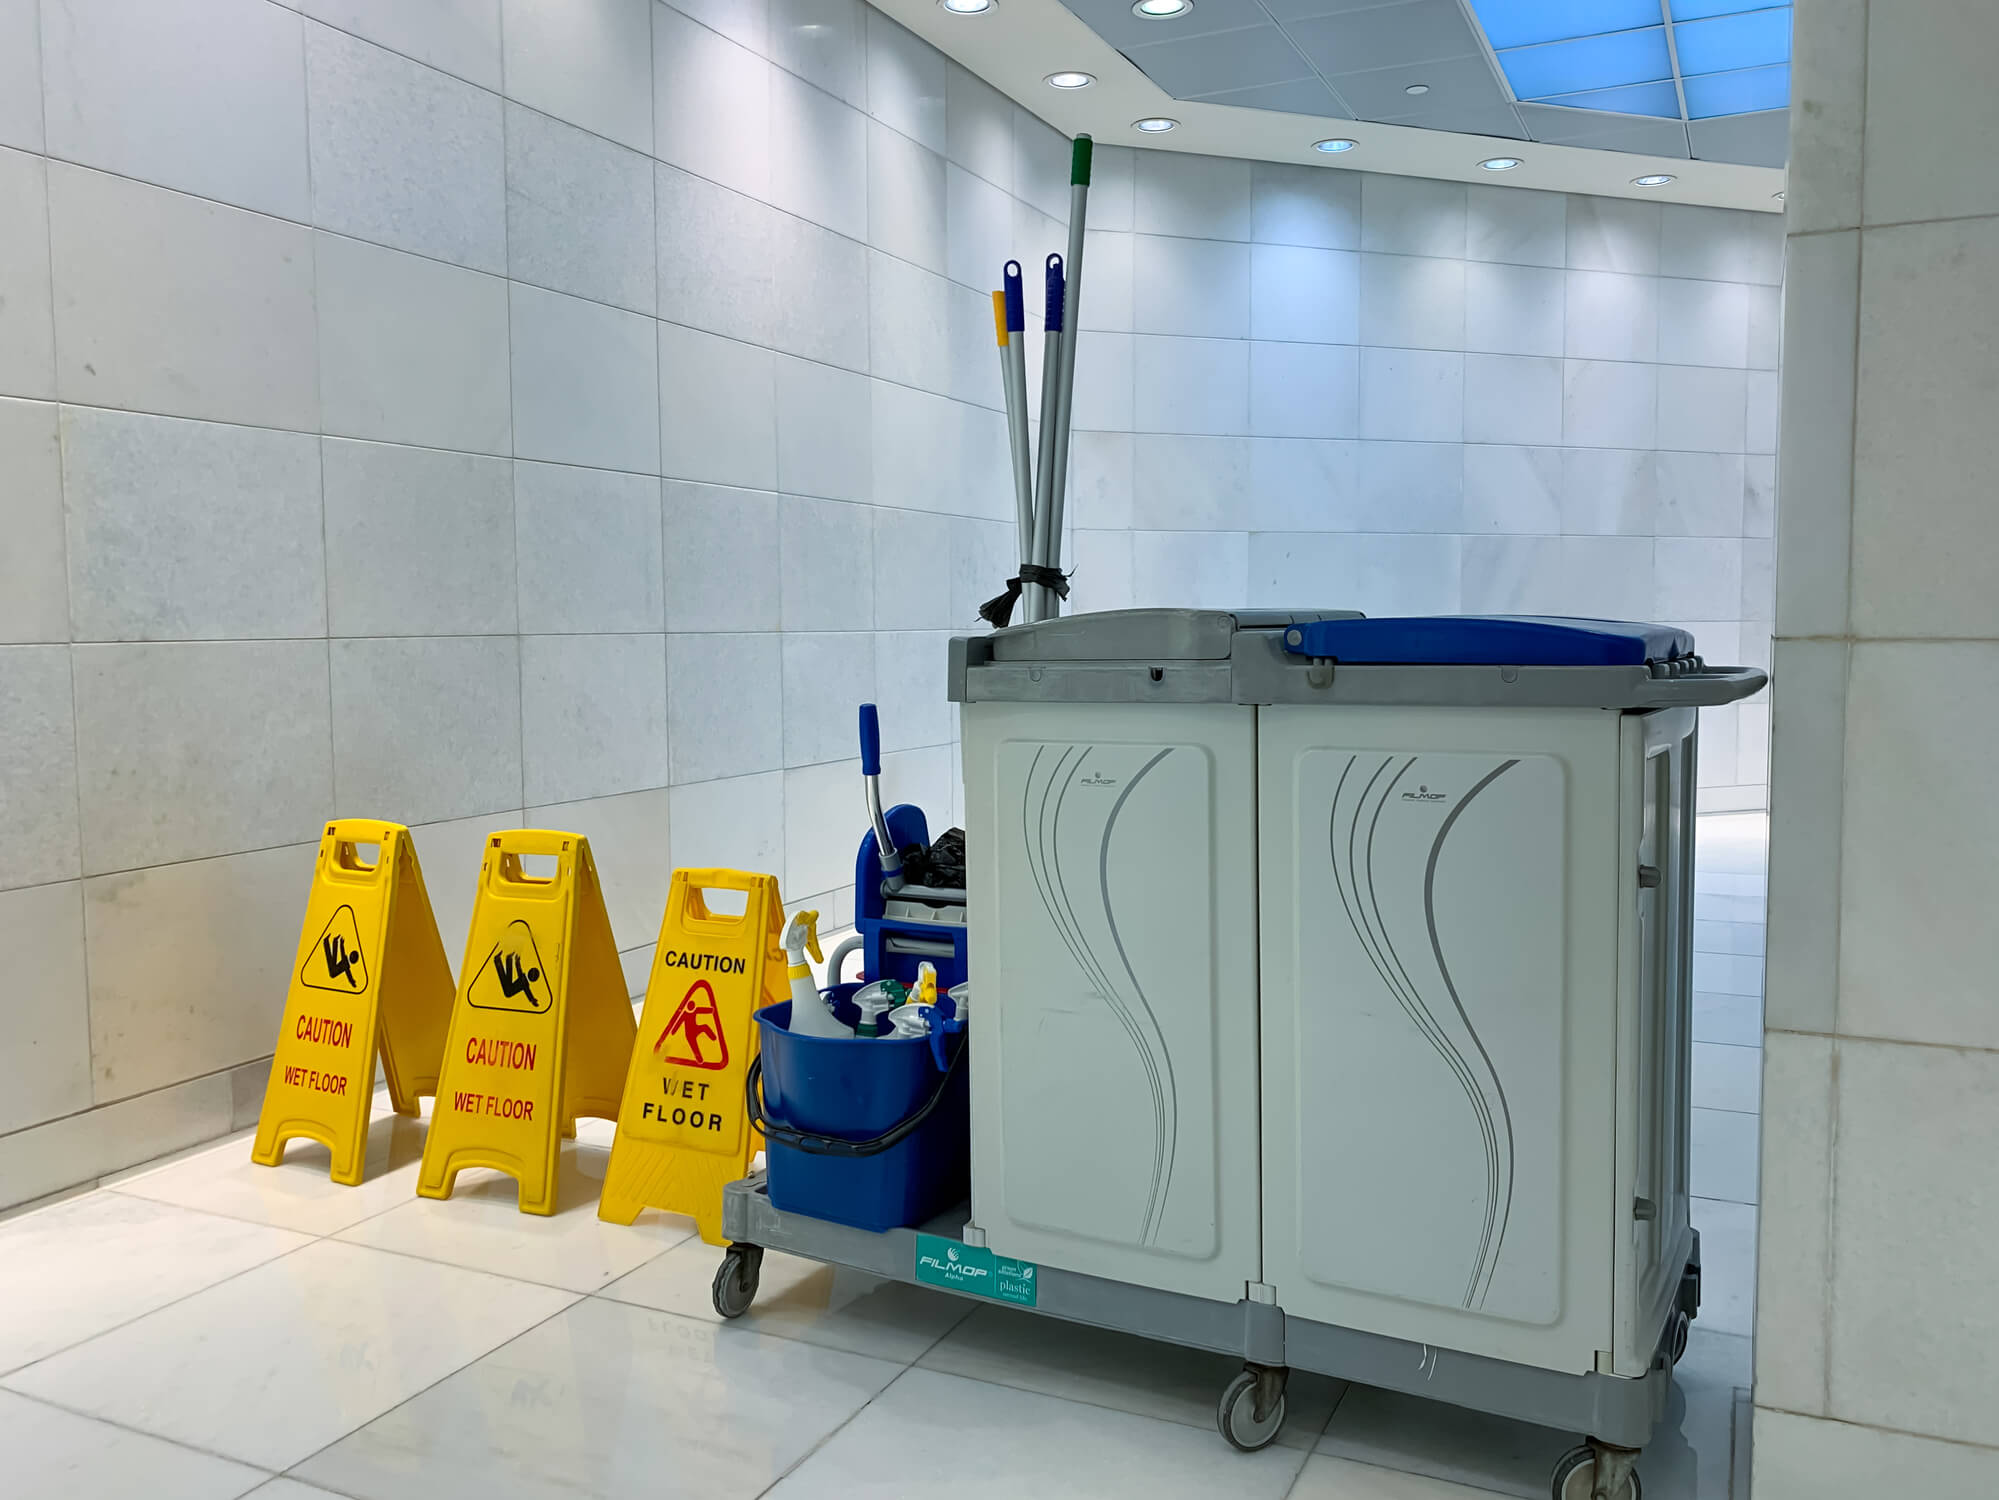 three yellow wet floor signs and a cleaning trolley with mop and bucket blocking access to a corridor in a commercial building